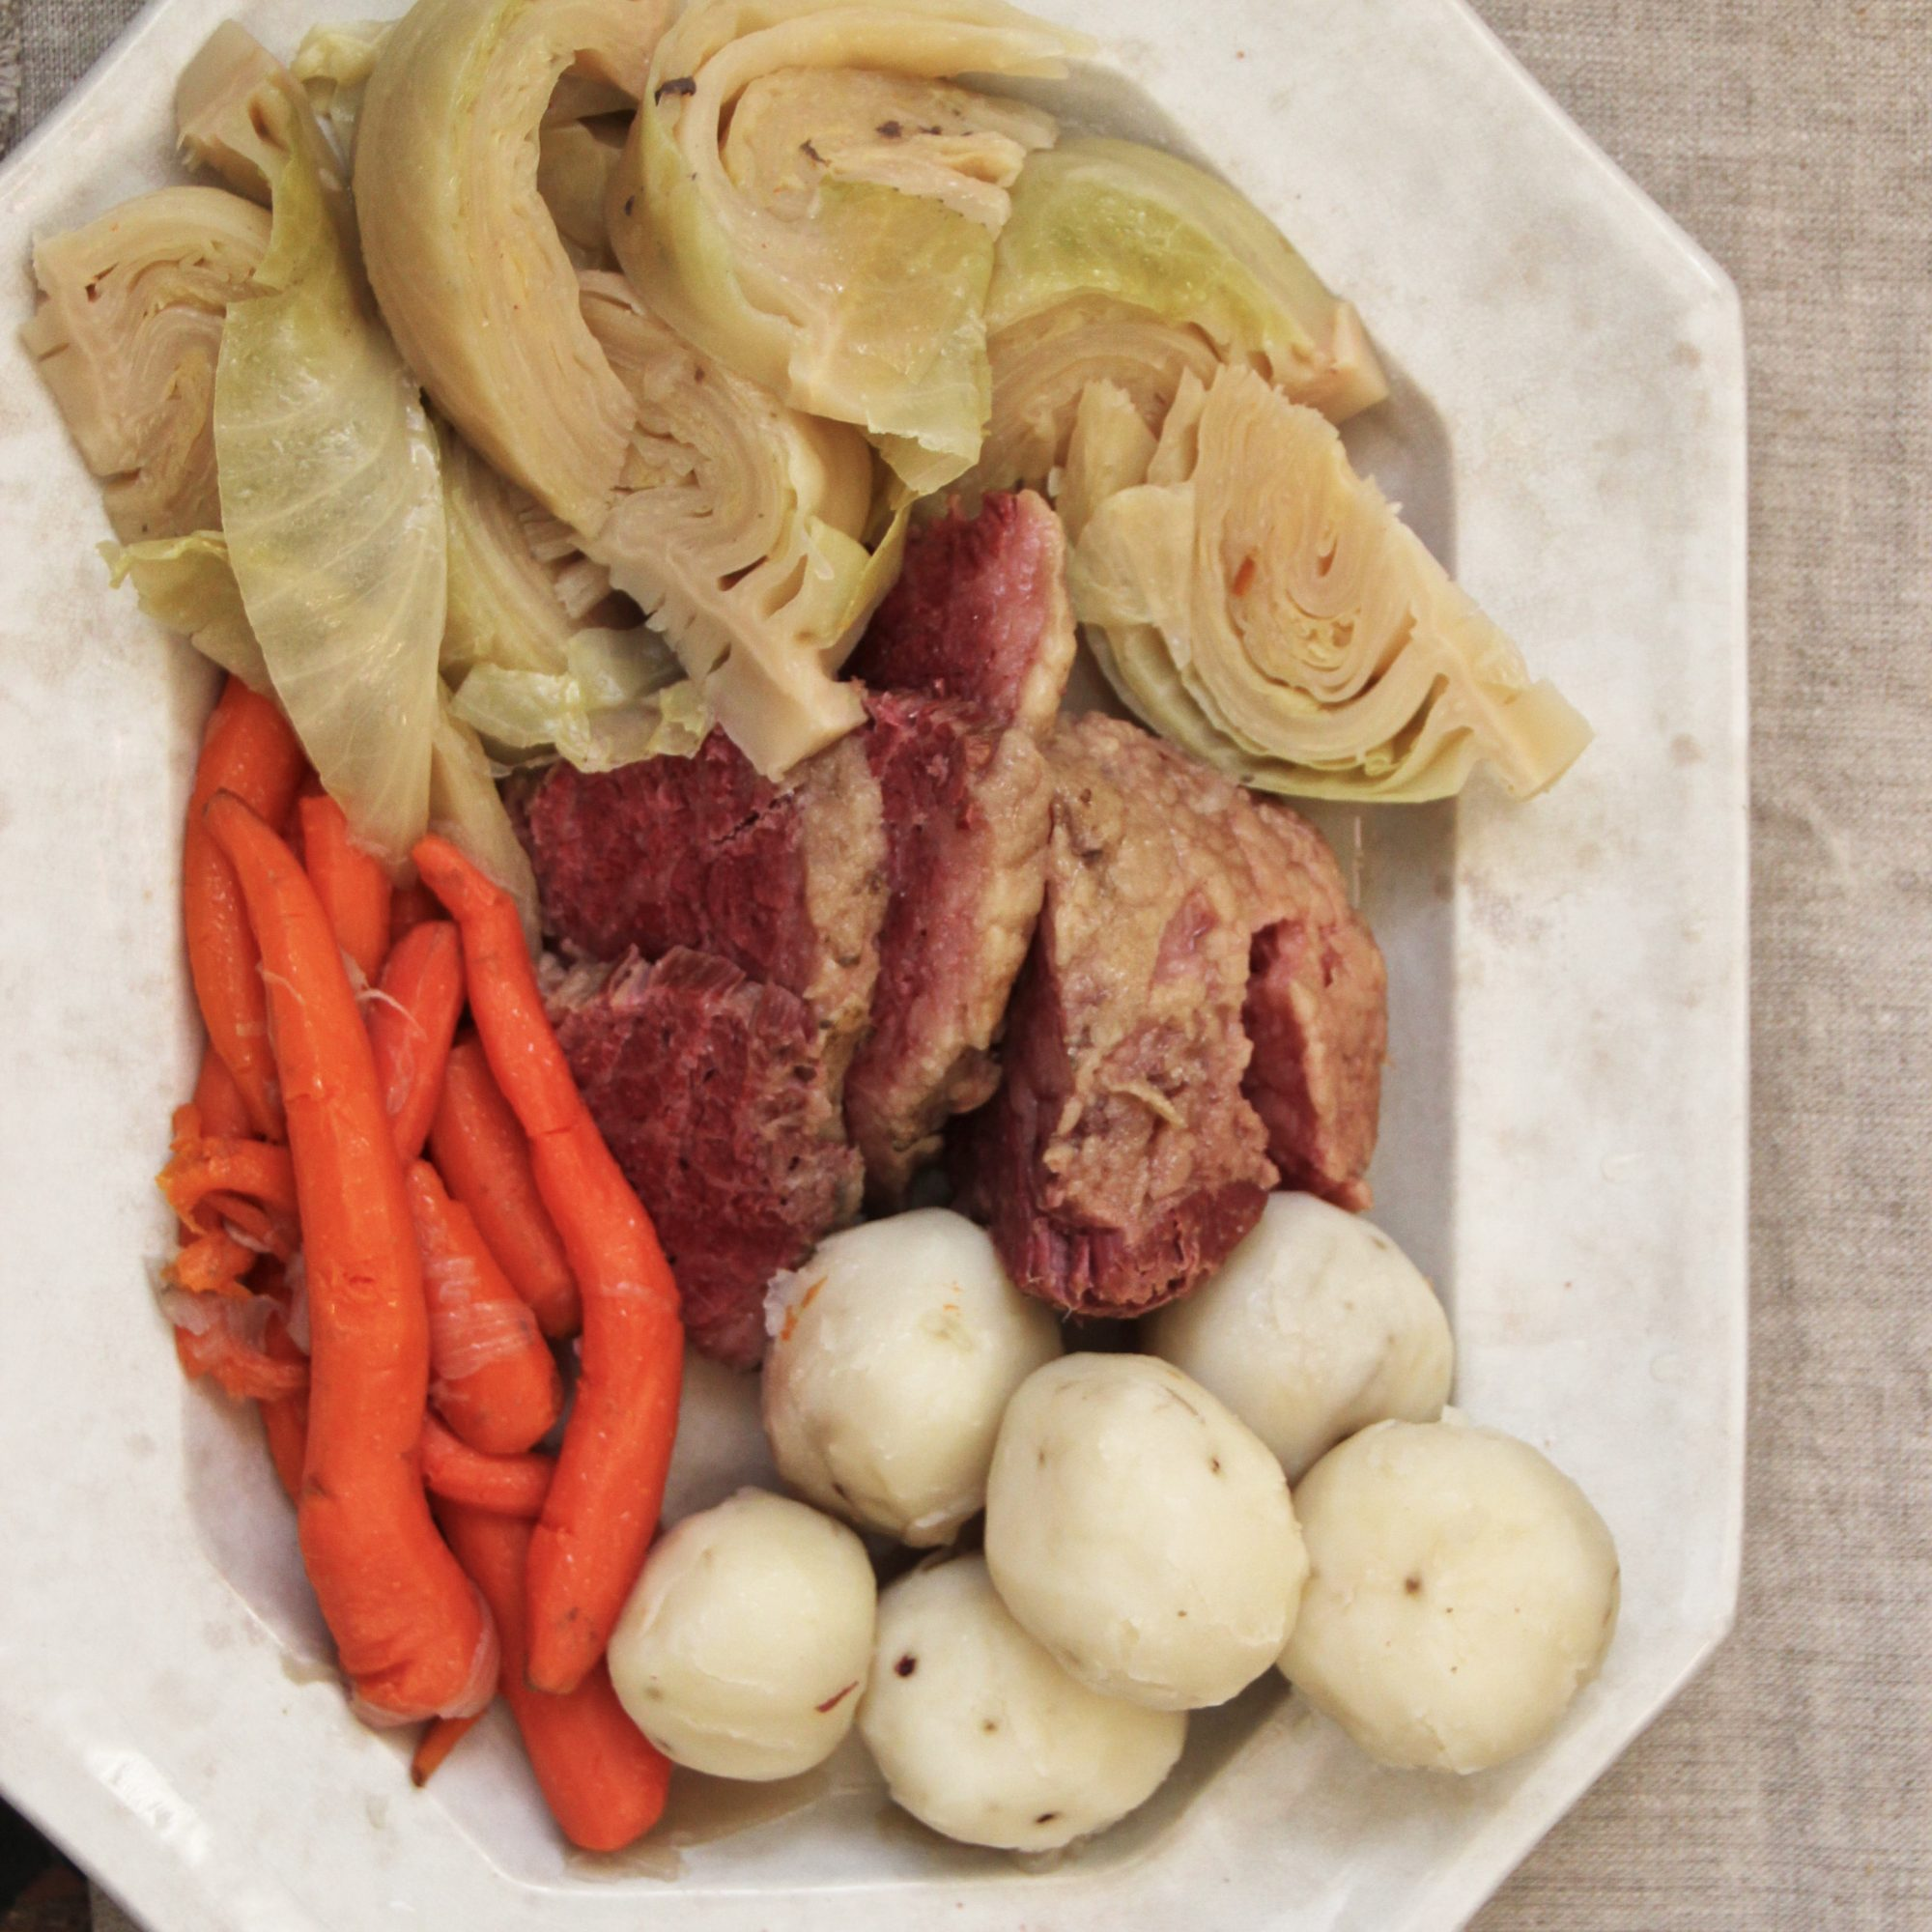 201404-r-corned-beef-and-cabbage.jpg